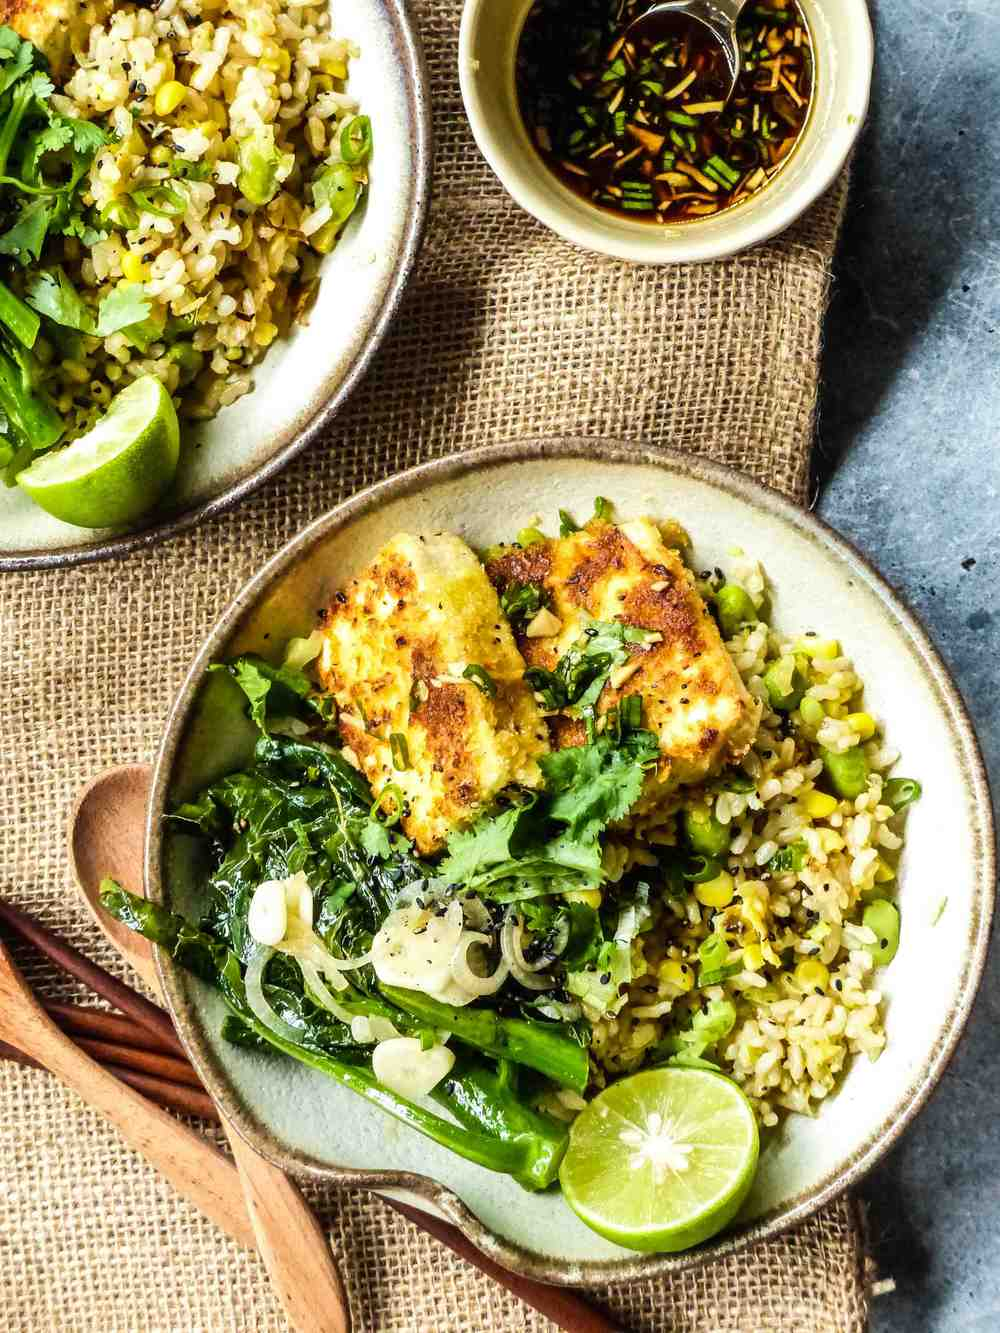 Servings: 2 persons    Preparation Time: 5-10 minutes    Cooking Time: 15-20 minutes    Ingredients:      For fried rice:            2 bowls cooked brown rice  1/2 bowl cooked corn  1/2 bowl edamame  1/2 onion, finely chopped  2 tbsp minced ginger  1-2 tbsp chopped spring onion and coriander  extra-virgin olive oil    For Chinese Kale:     100-150g Chinese Kale  1/2 vegetarian stock tablet  1 shallot  1-2 garlic cloves  extra-virgin olive oil    For crispy tofu:     150g hard tofu, squared  1 egg*   1/2 cup breadcrumbs  1 garlic clove, finely chopped  1/2 green chili, finely chopped  1/2 red chilli, finely chopped  * some leftover egg can be used for making the fried rice    For the sweet and spicy lime sauce:    1/2 lime juice  1-2 tsp honey  1-2 tsp mirin  2 tbsp soy sauce  1-2 tbsp chopped spring onion  1/2 garlic clove, finely chopped  1/2 red chili, finely chopped  1/2 green chili, finely chopped